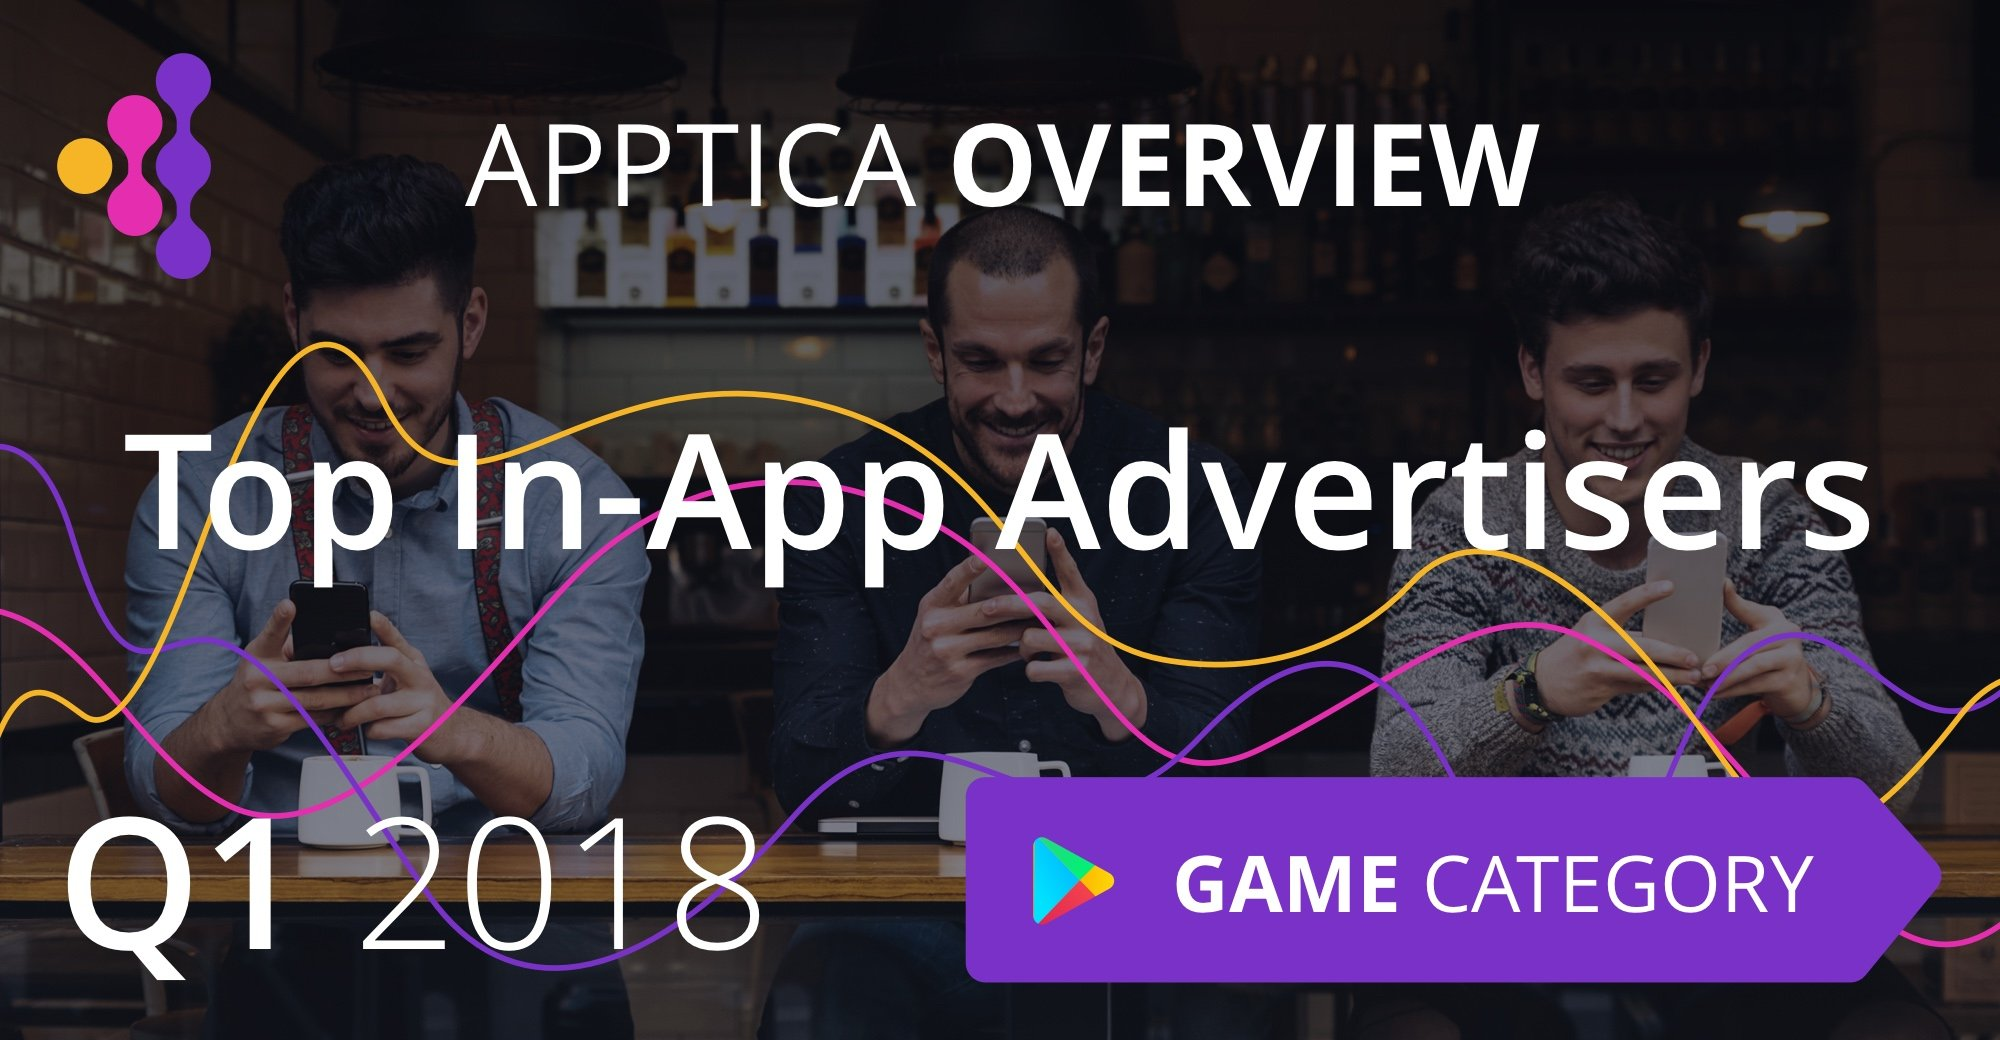 Top In-App Advertisers of Q1 2018, Android, Game Category. Apptica Overview.